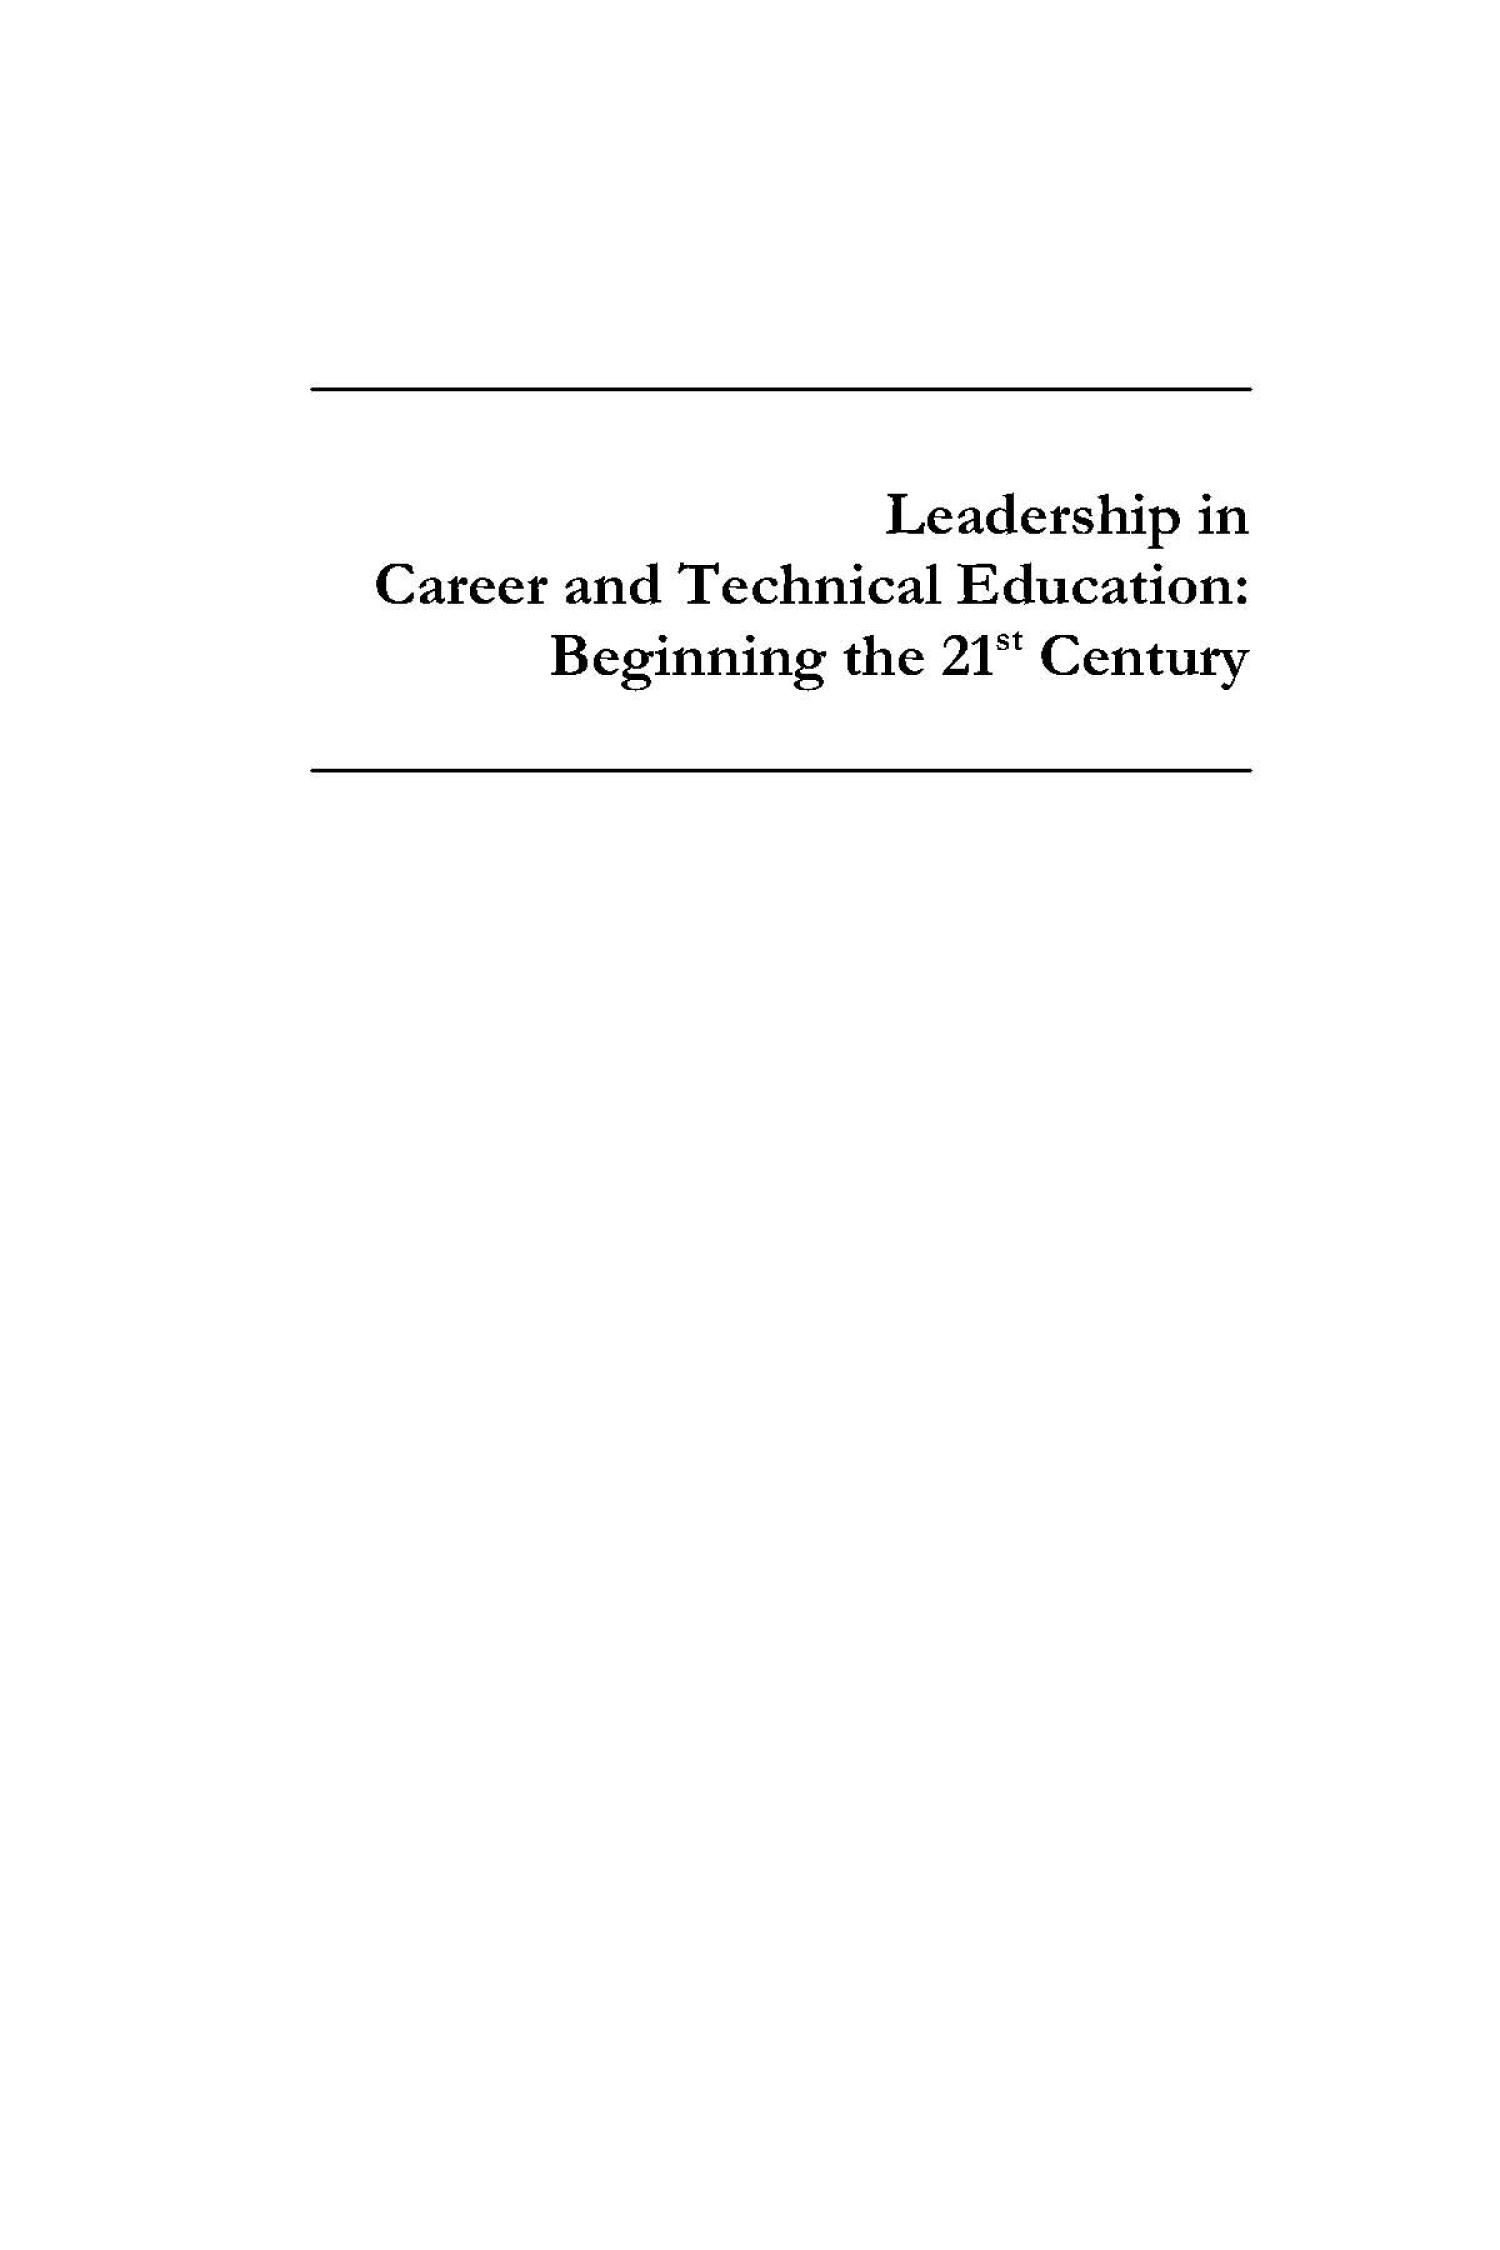 Leadership in Career and Technical Education: Beginning the 21st Century                                                                                                      I